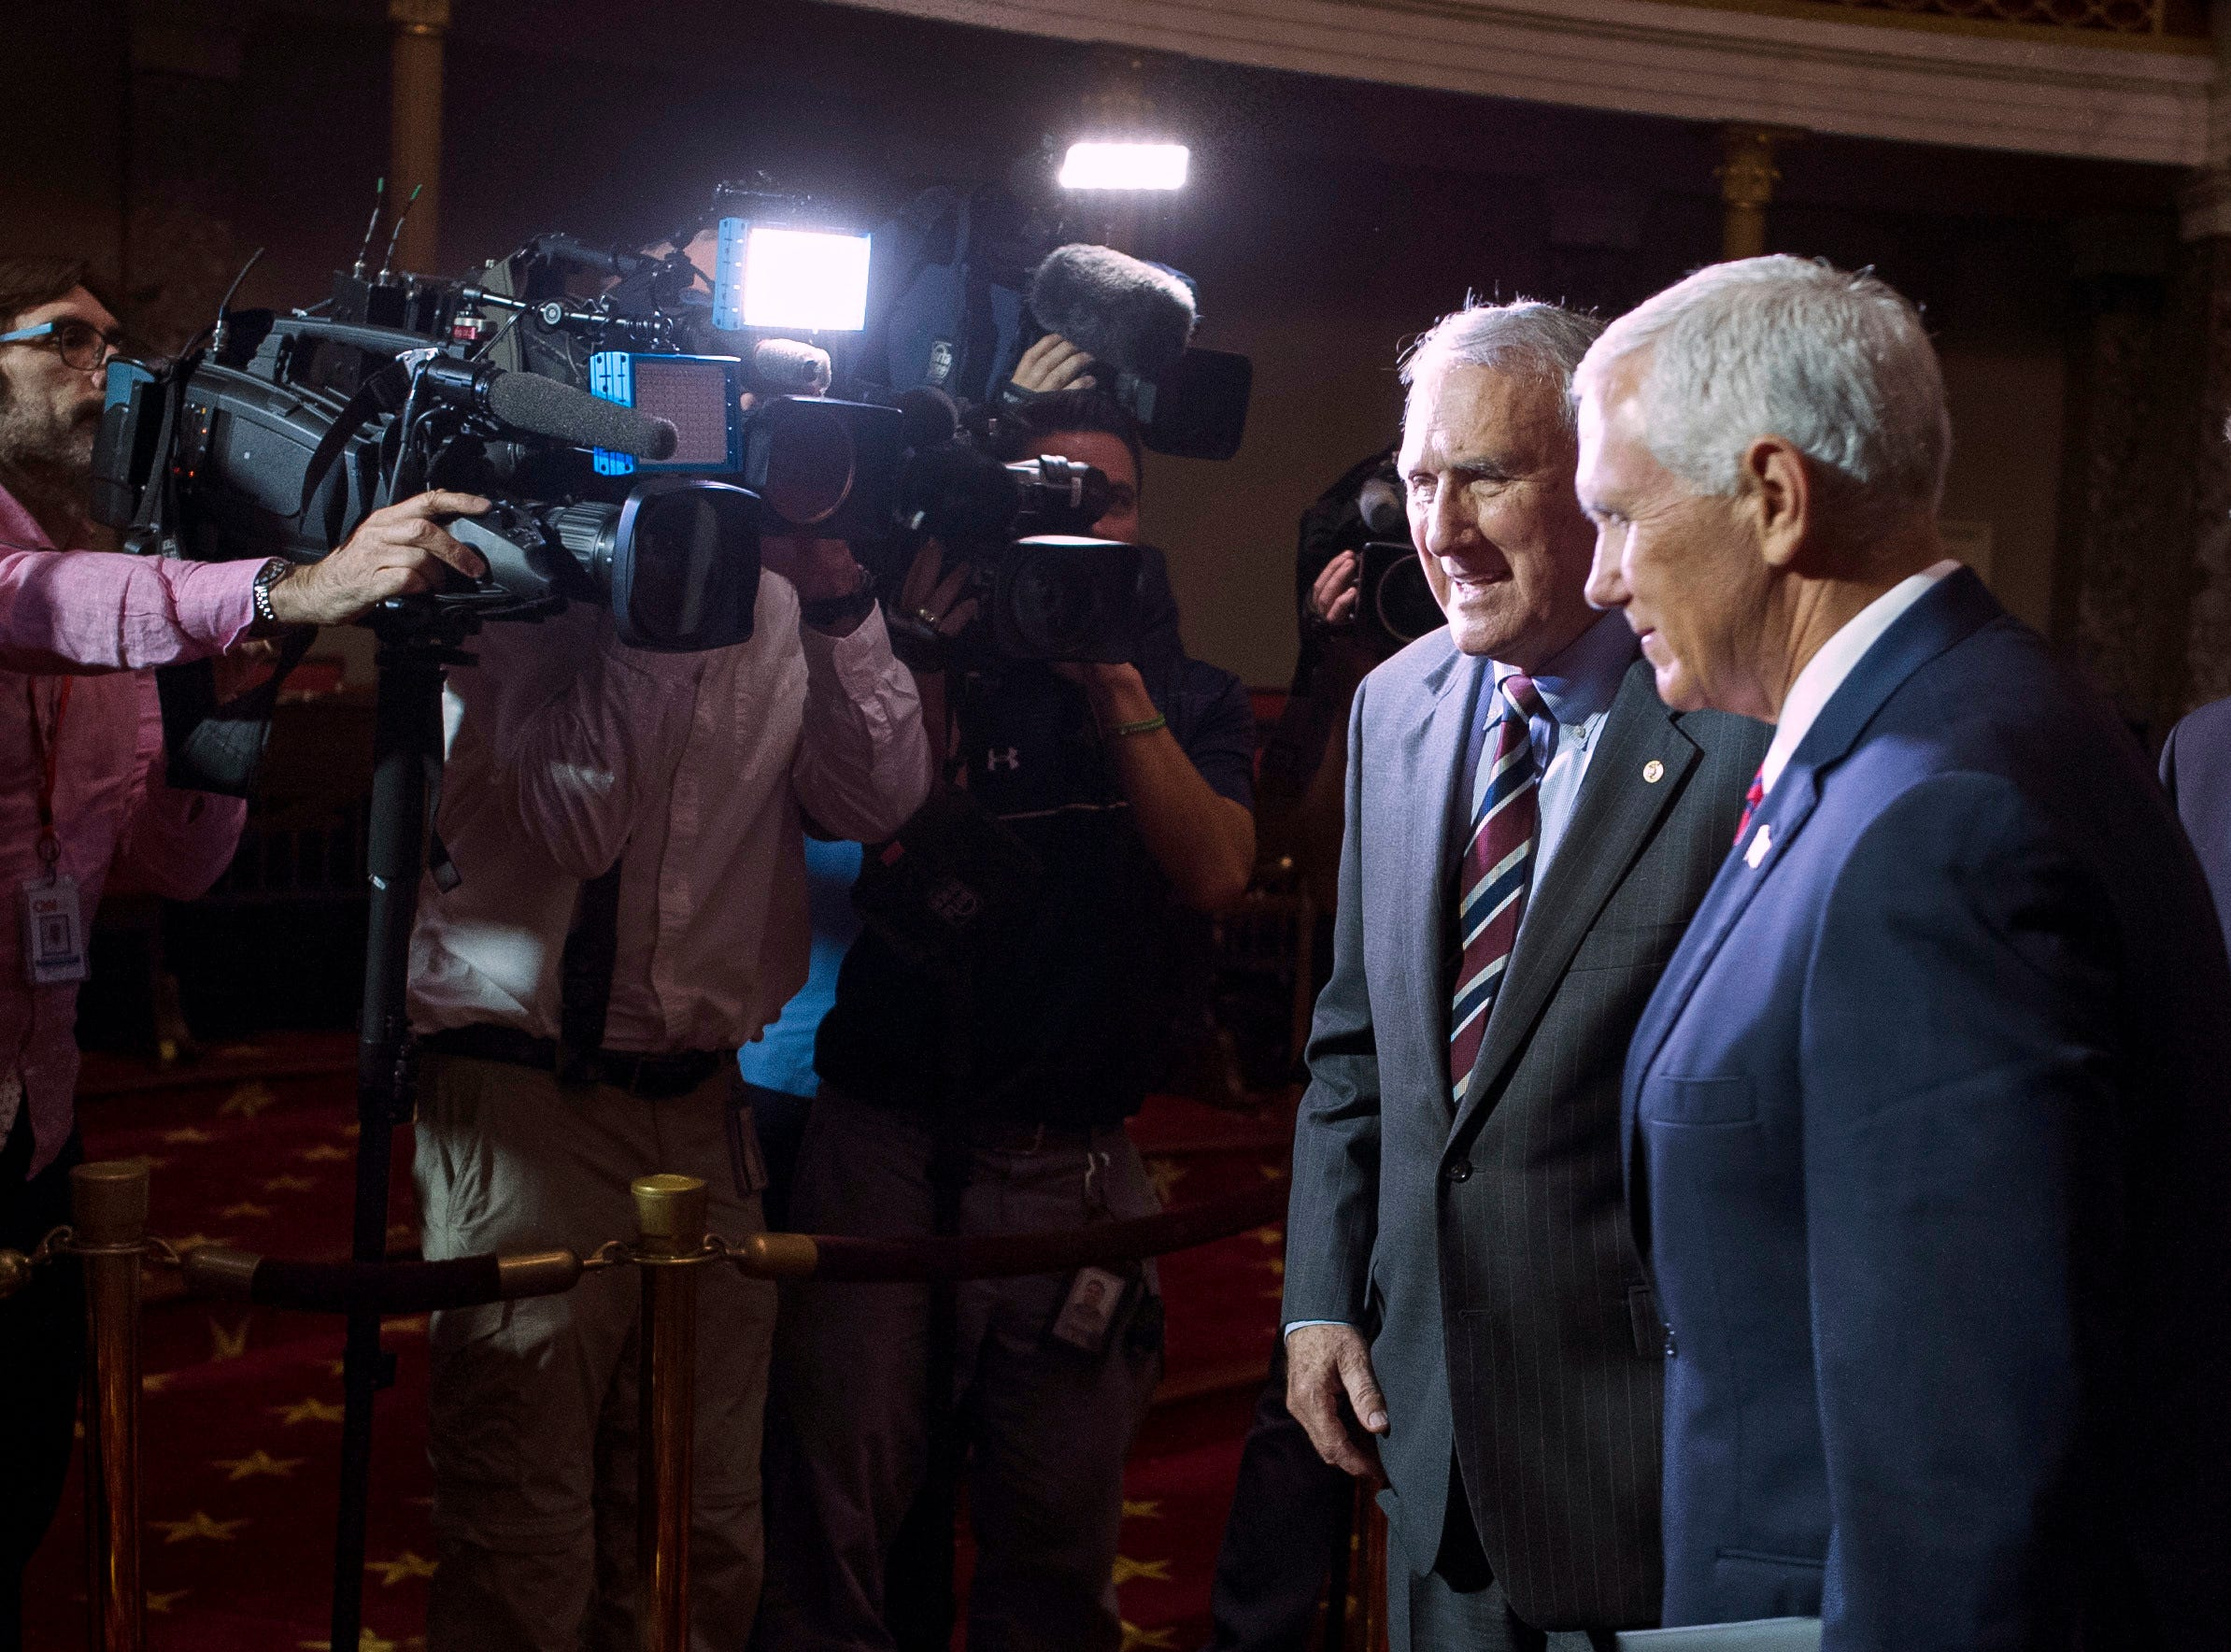 Vice President Mike Pence (right) and Sen. Jon Kyl, R-Ariz., leave the Old Senate Chamber after a ceremonial swearing-in for Kyl on Capitol Hill, in Washington, on Sept. 5, 2018.